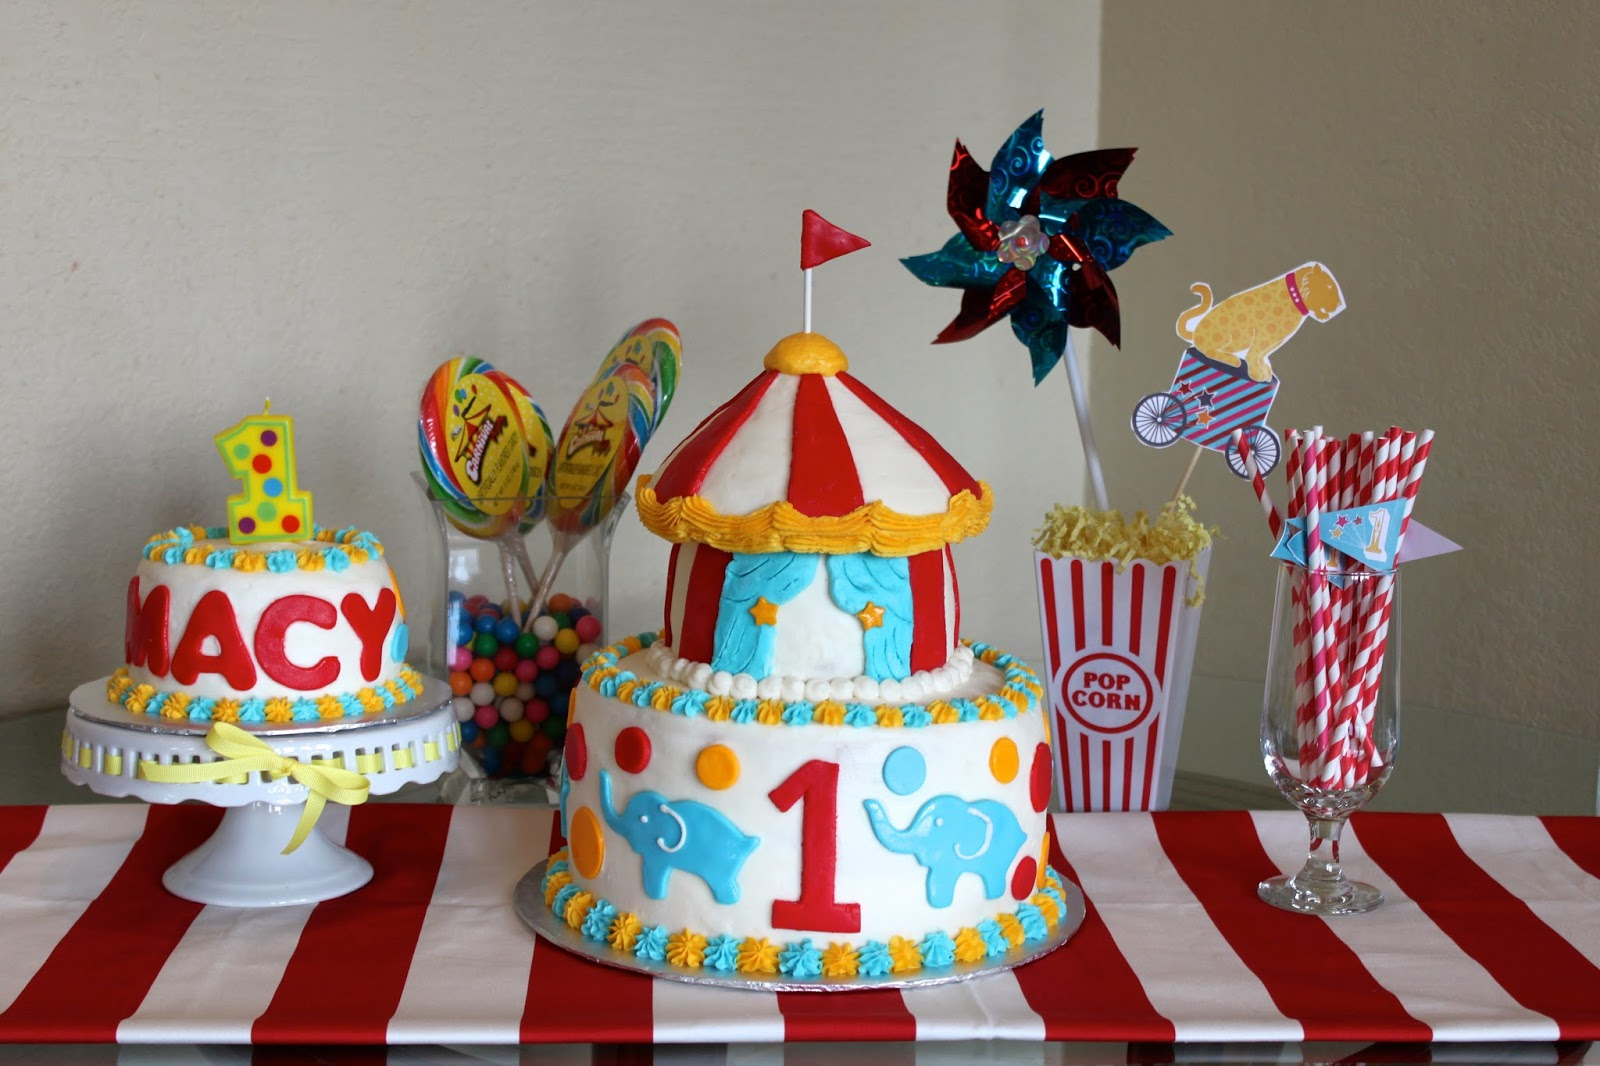 Just a Little Party Little Party Feature BIG TOP CIRCUS 1st